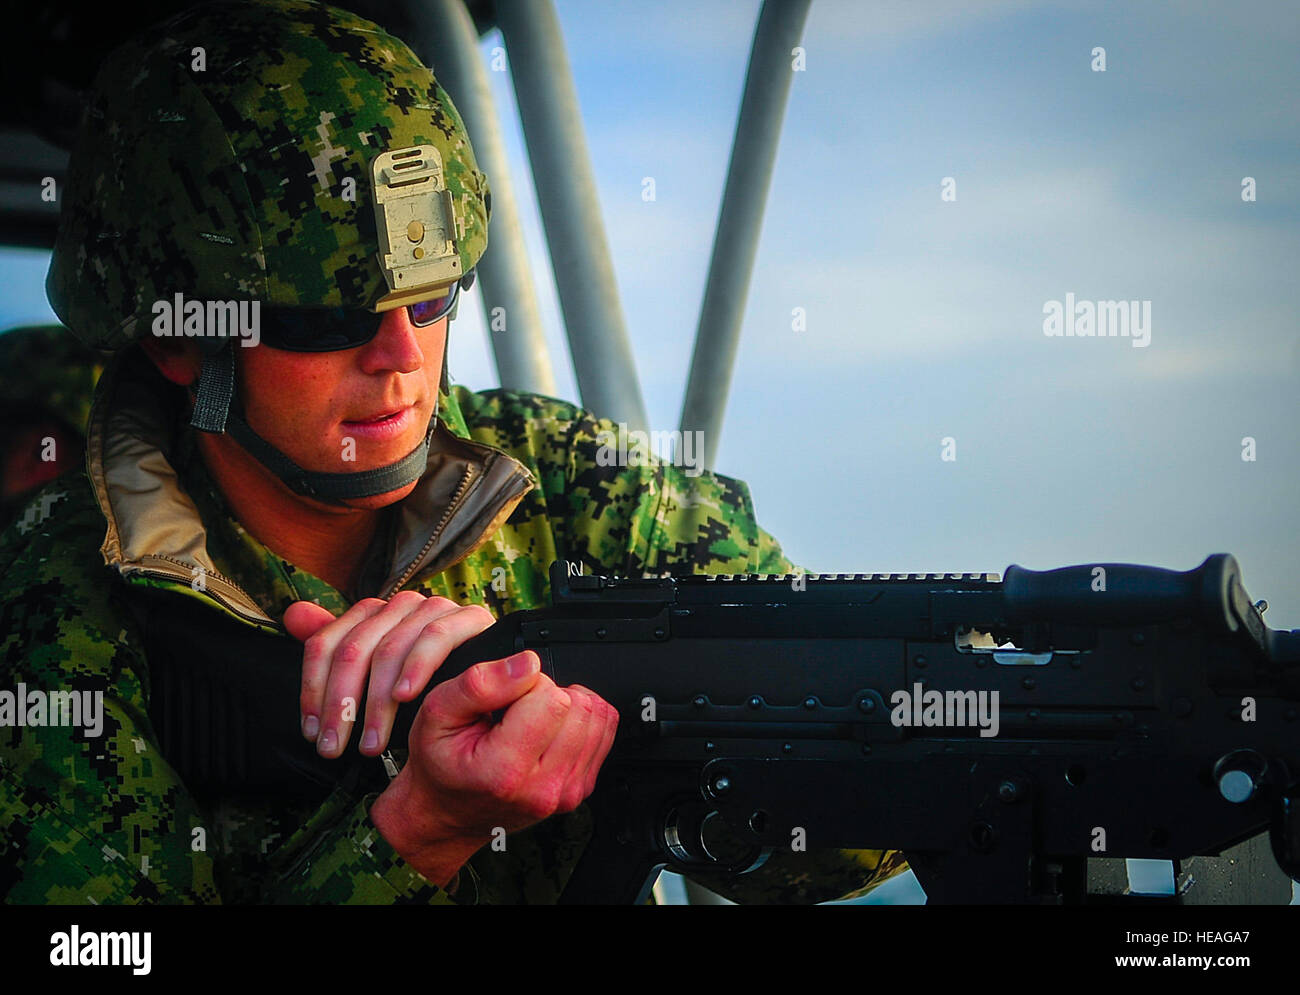 Petty Officer 3rd Class Kane Capone, a boatswain's mate stationed at Port Security Unit 309 in Port Clinton, Ohio, Stock Photo